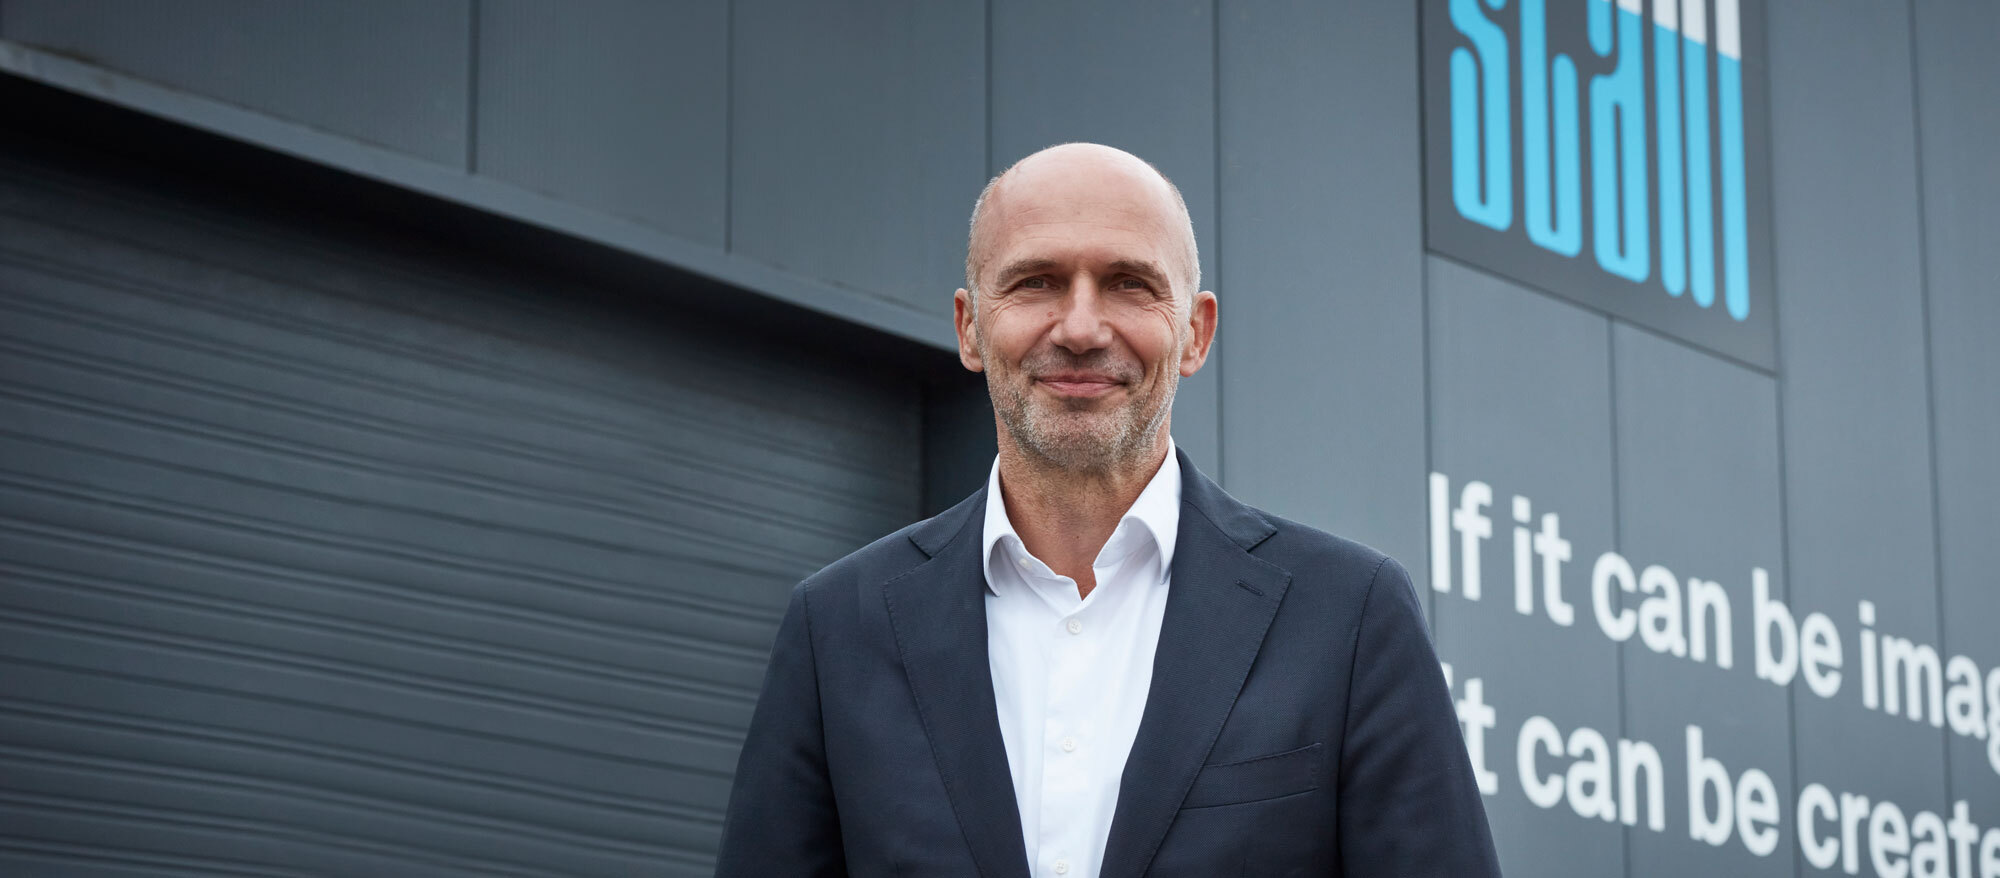 Stahl's new CEO, Maarten Heijbroek, reflects on his first 100 days in the driving seat